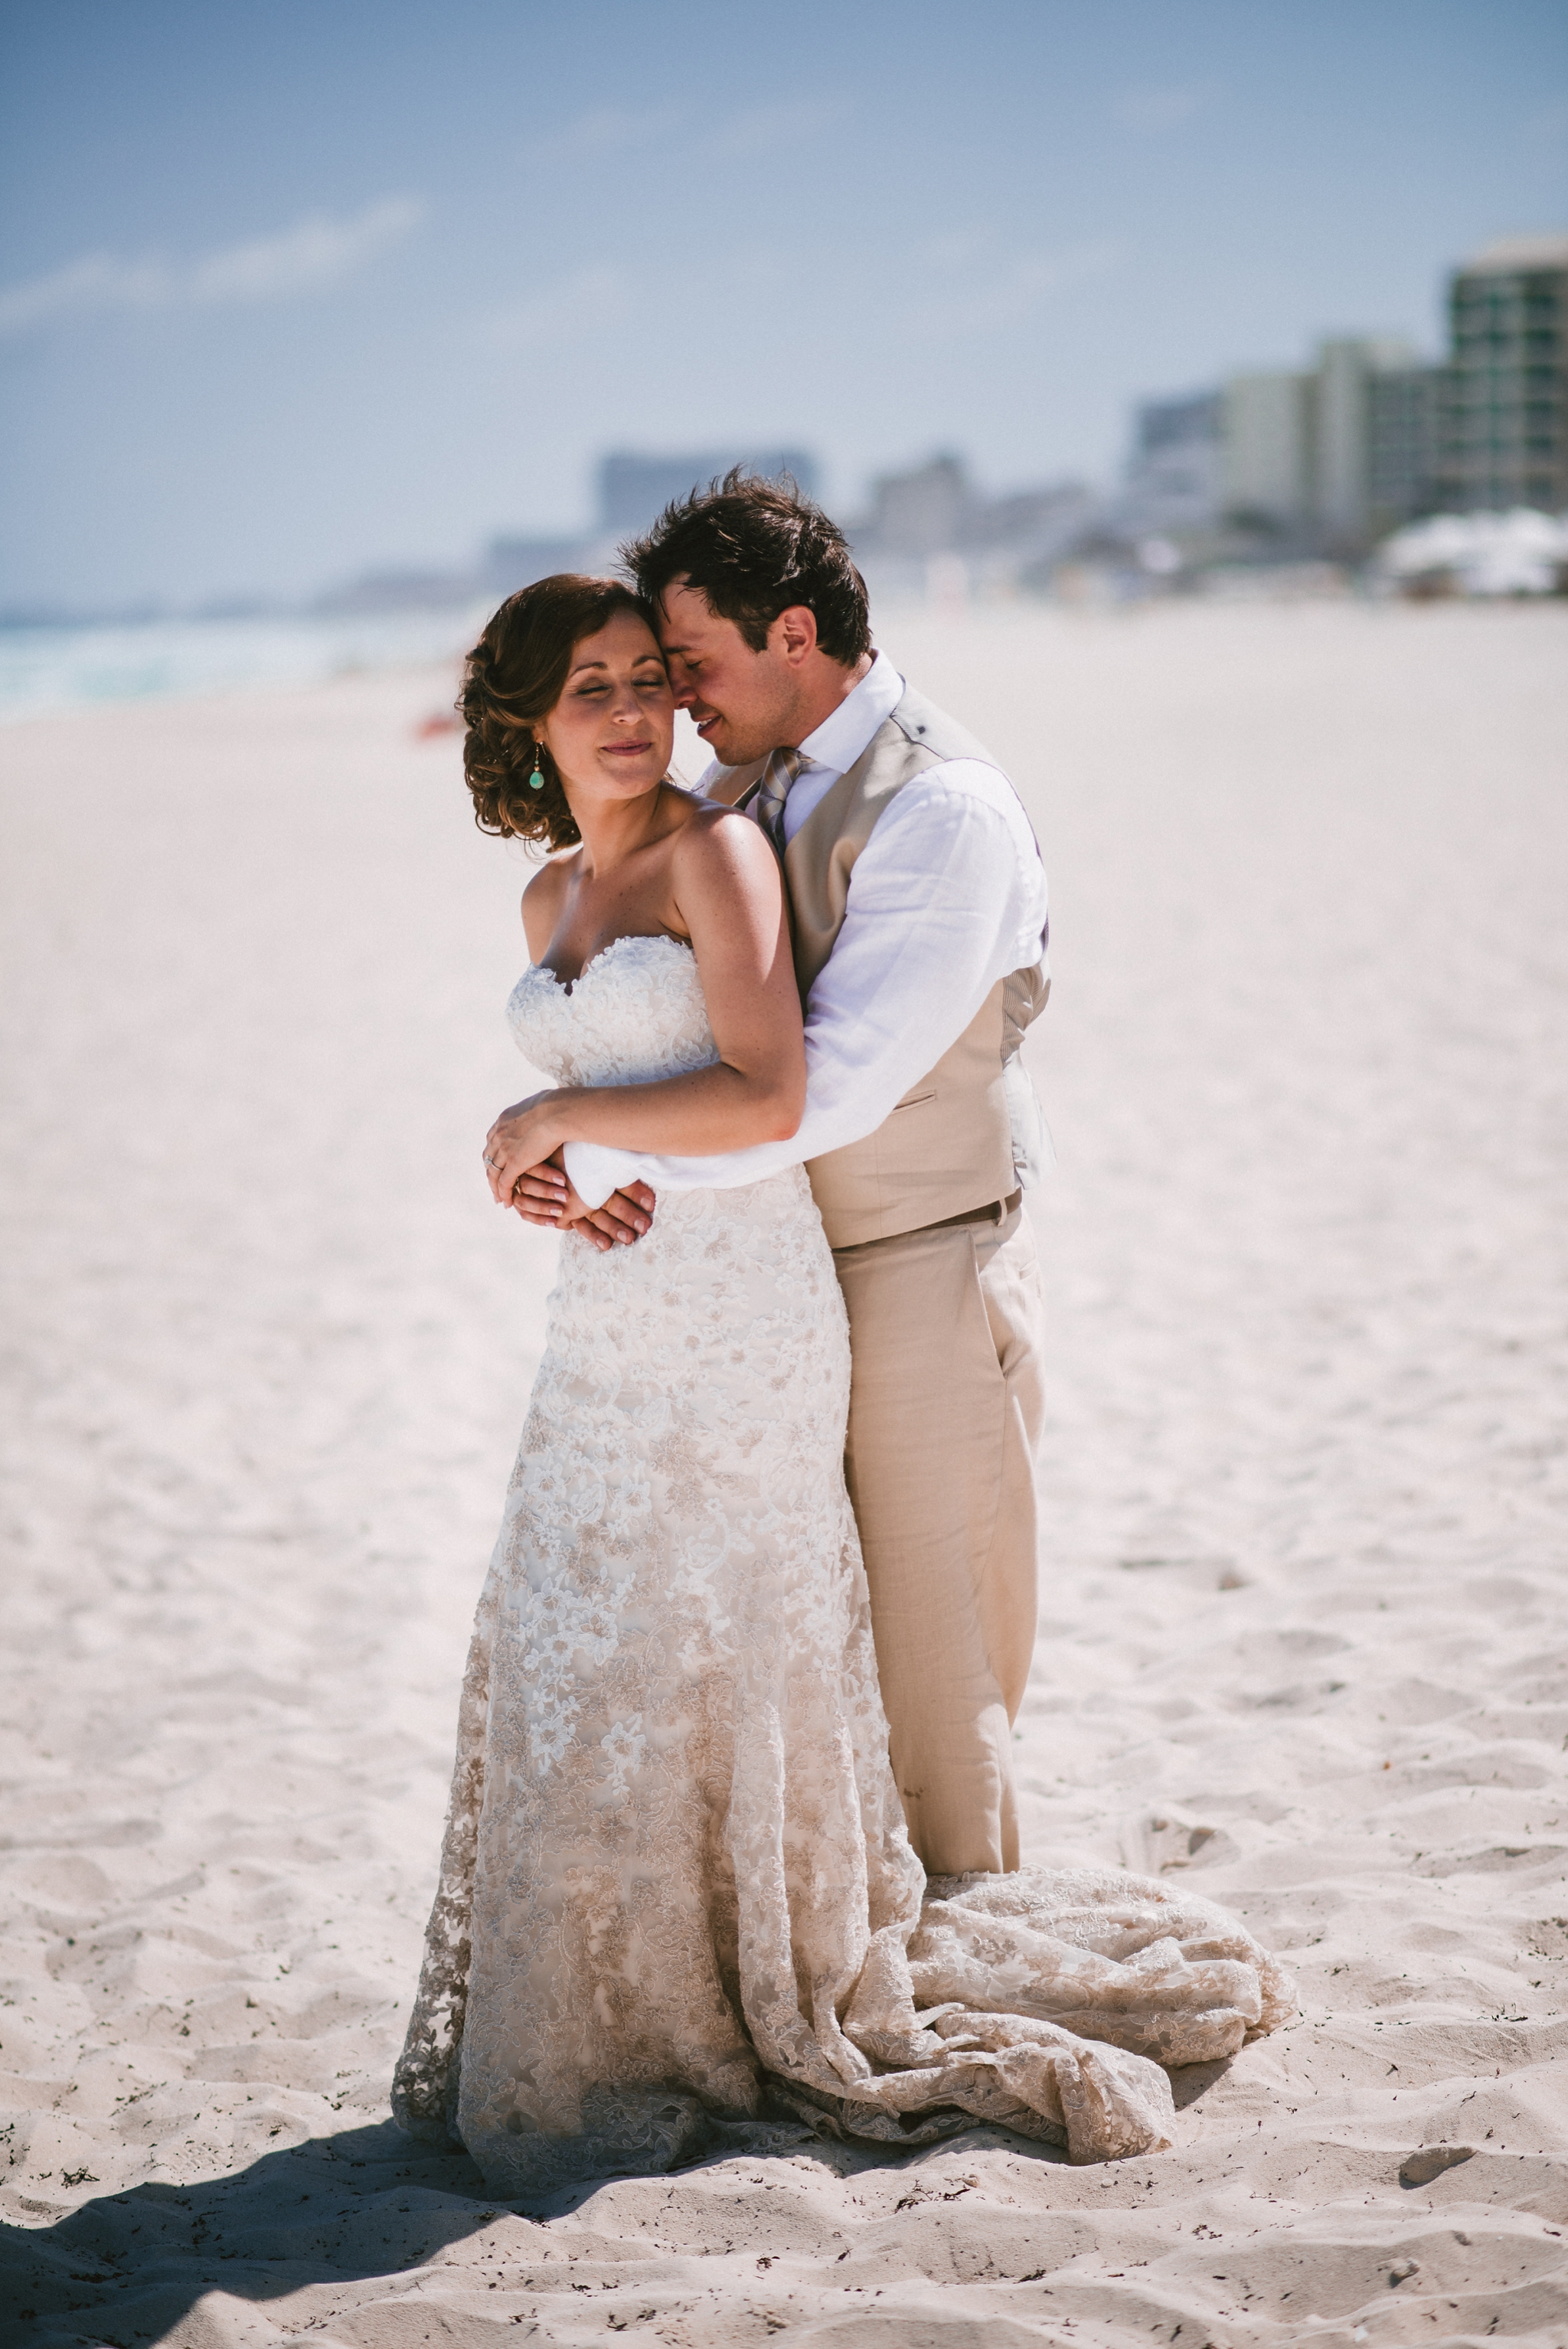 kaihla_tonai_intimate_wedding_elopement_photographer_1145